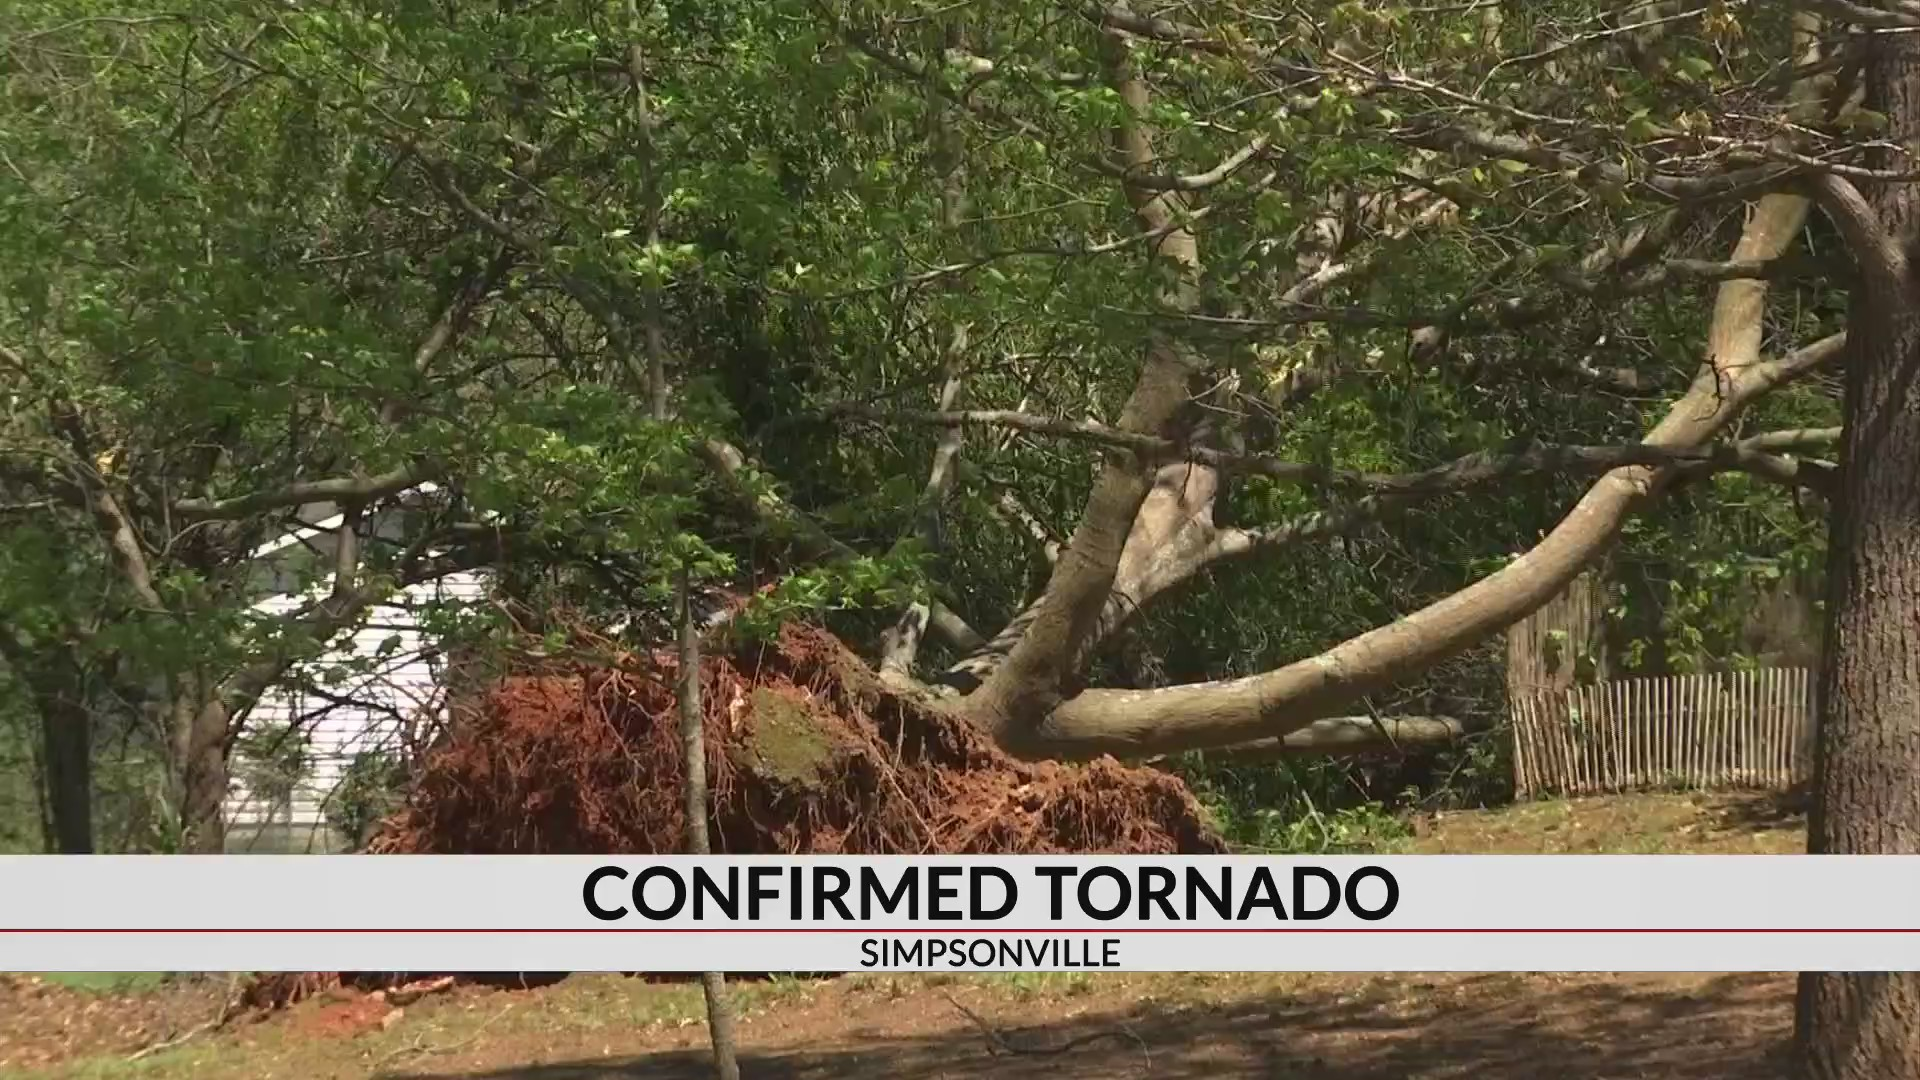 Tornadoes hit Simpsonville & Hart Co., NWS confirms